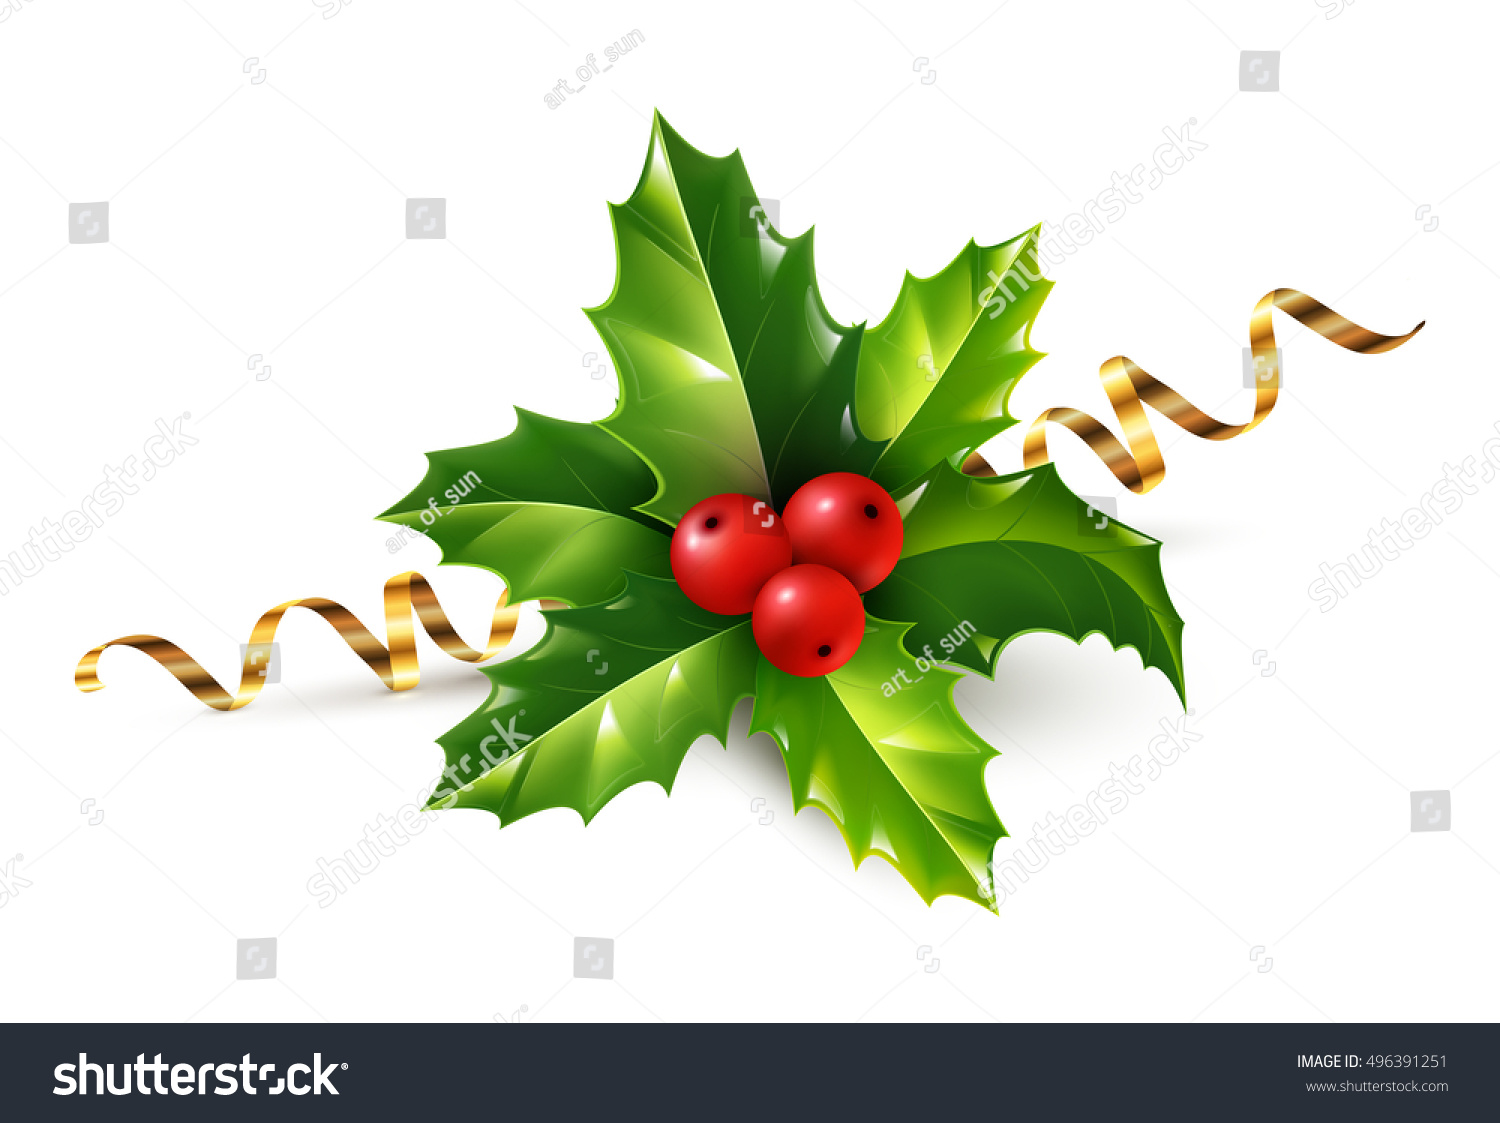 Vector Realistic Holly Christmas Ornament Holly Green Leaves And Red  Berries With Golden Serpentine Ribbon